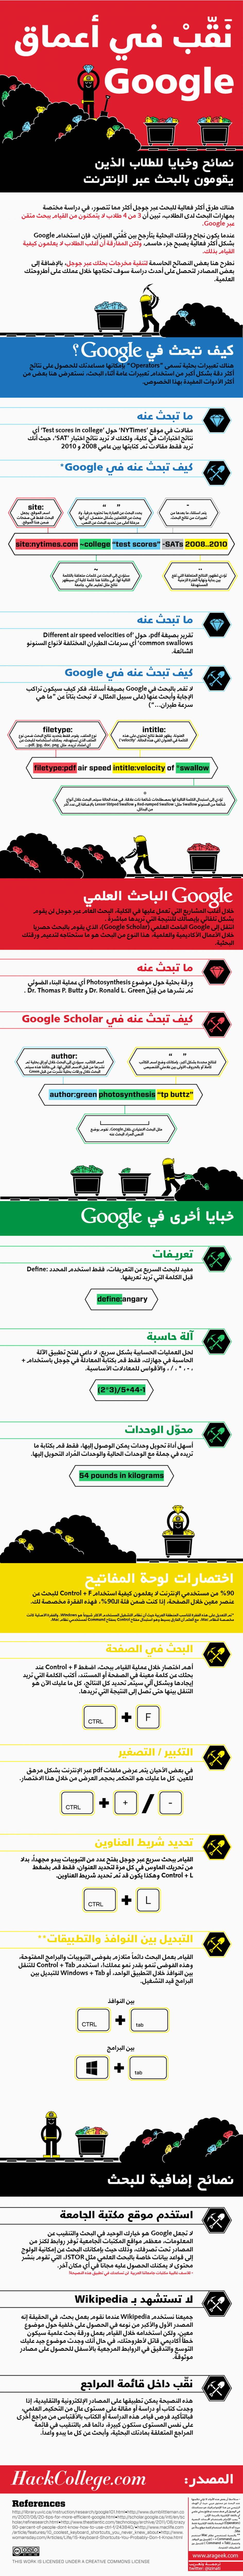 Explore more in Google (Arabic)  Infographic